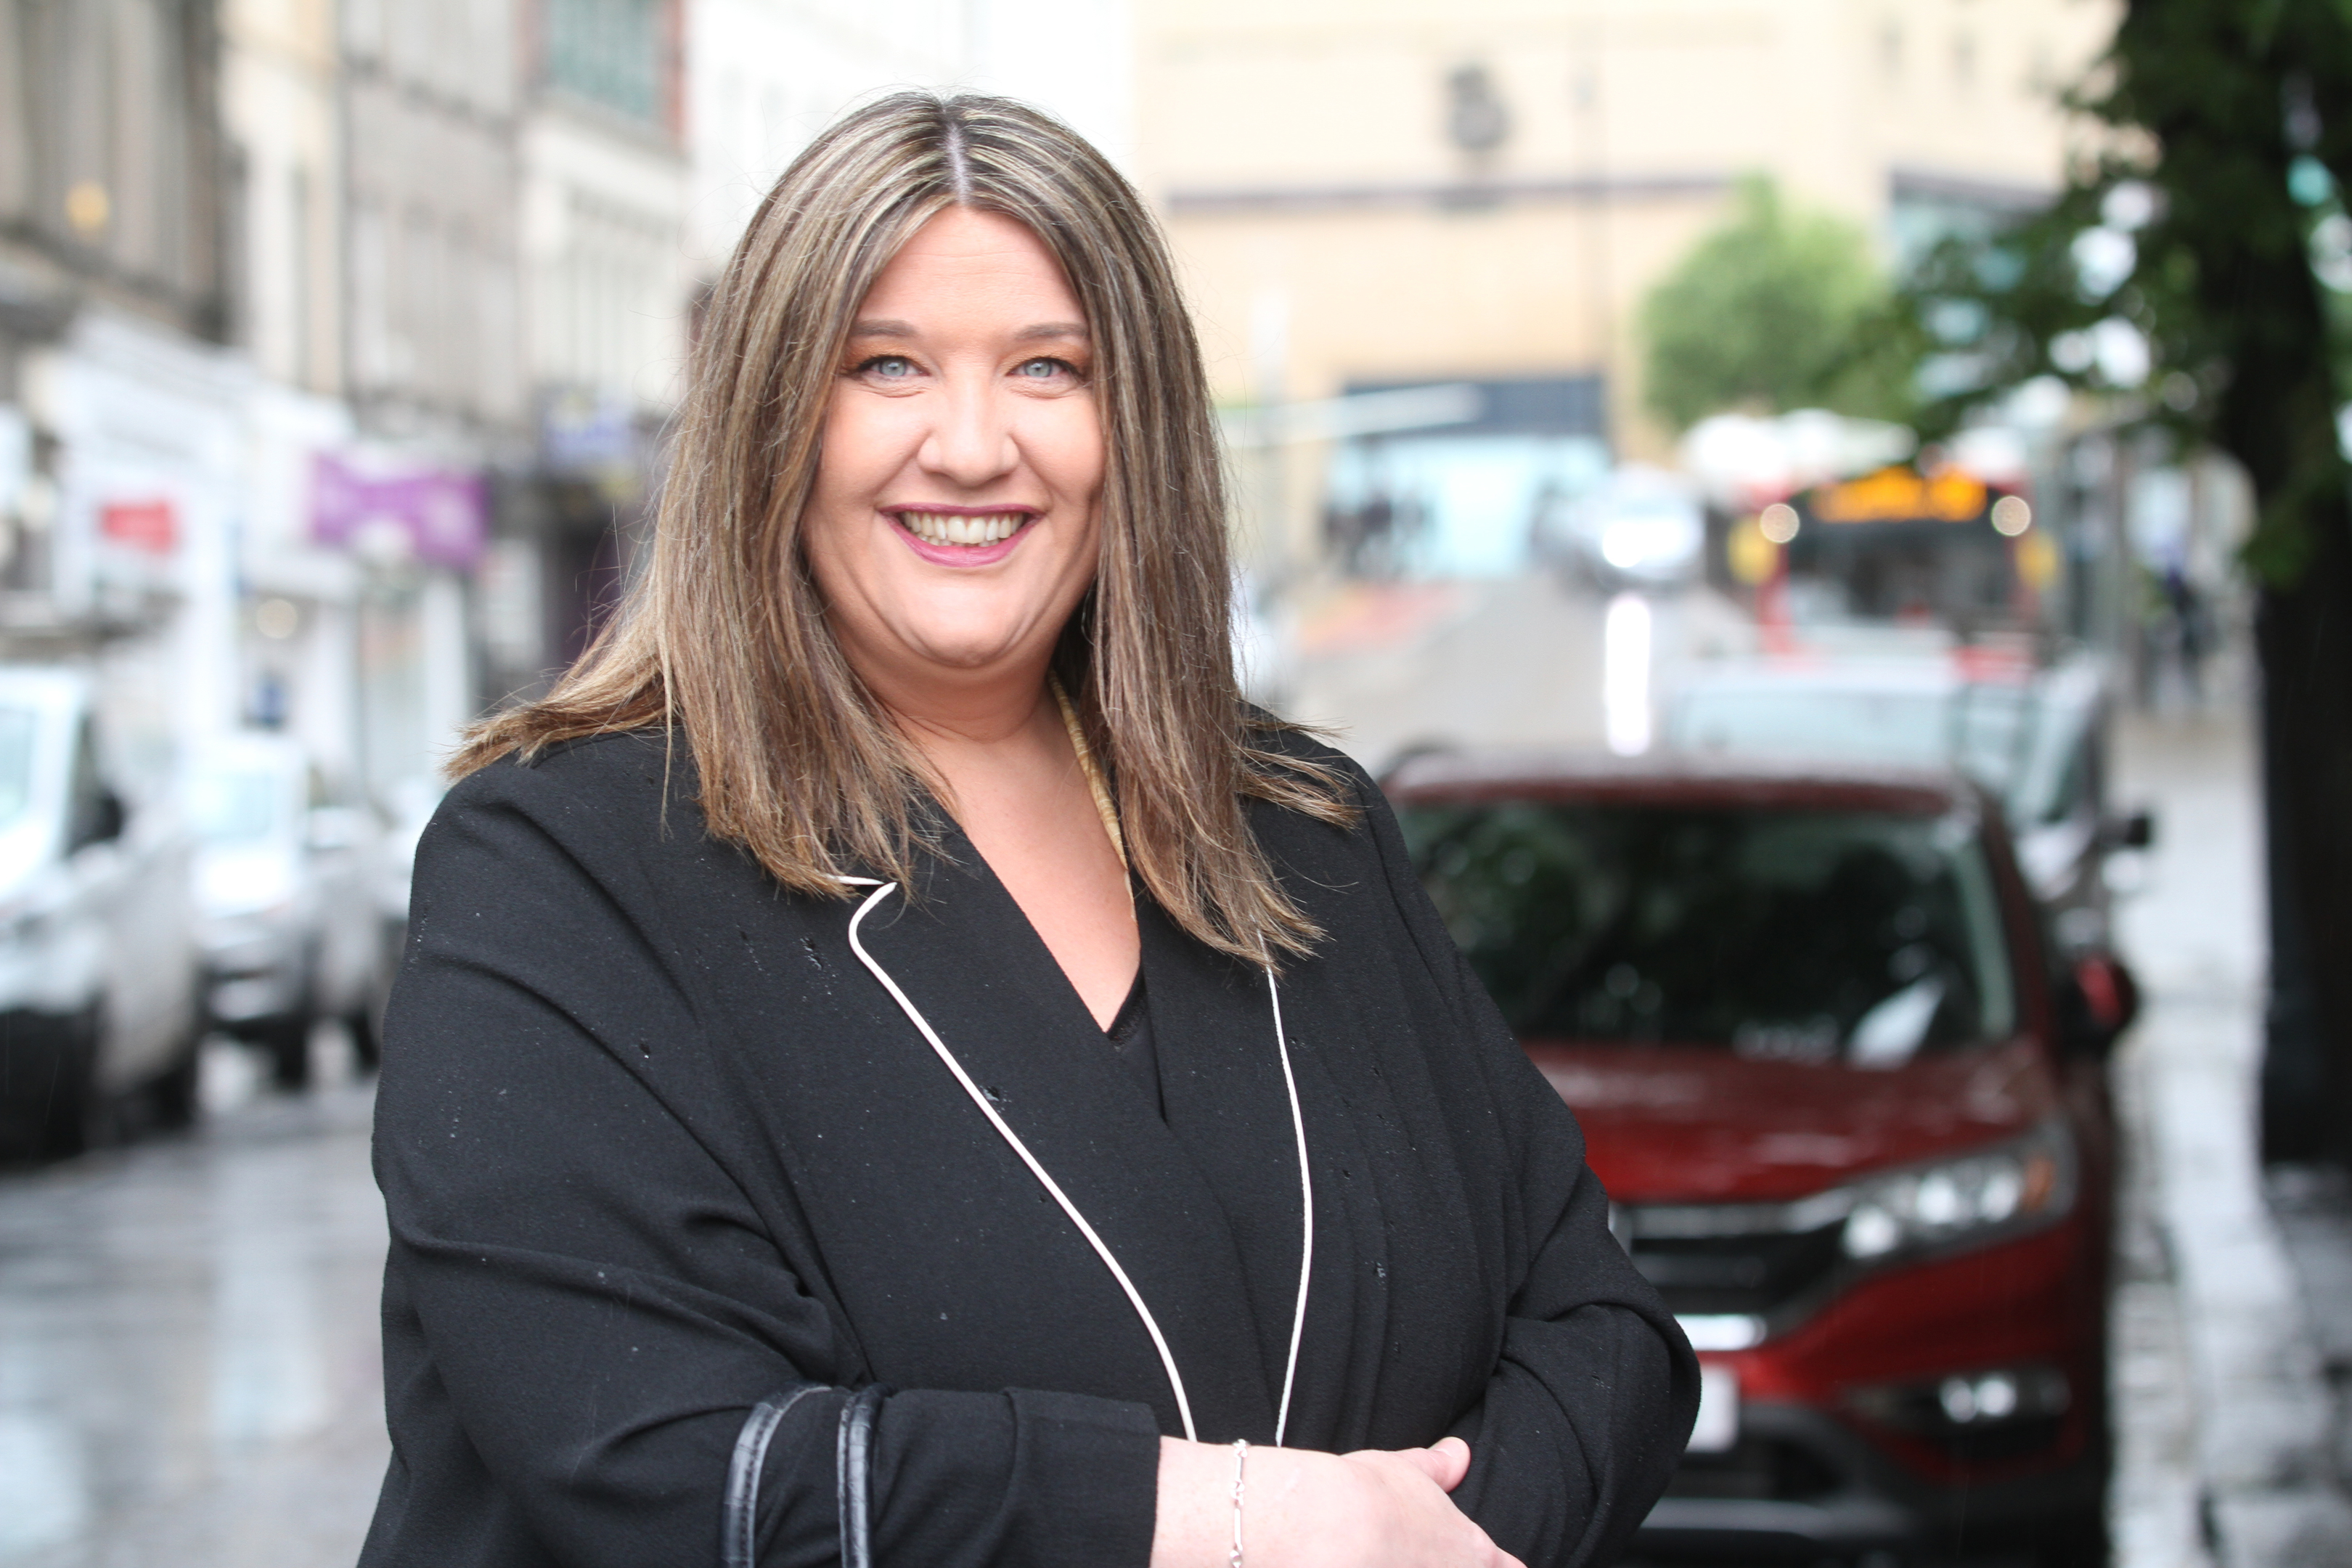 Dundee City Council's city centre manager Sarah Craig.